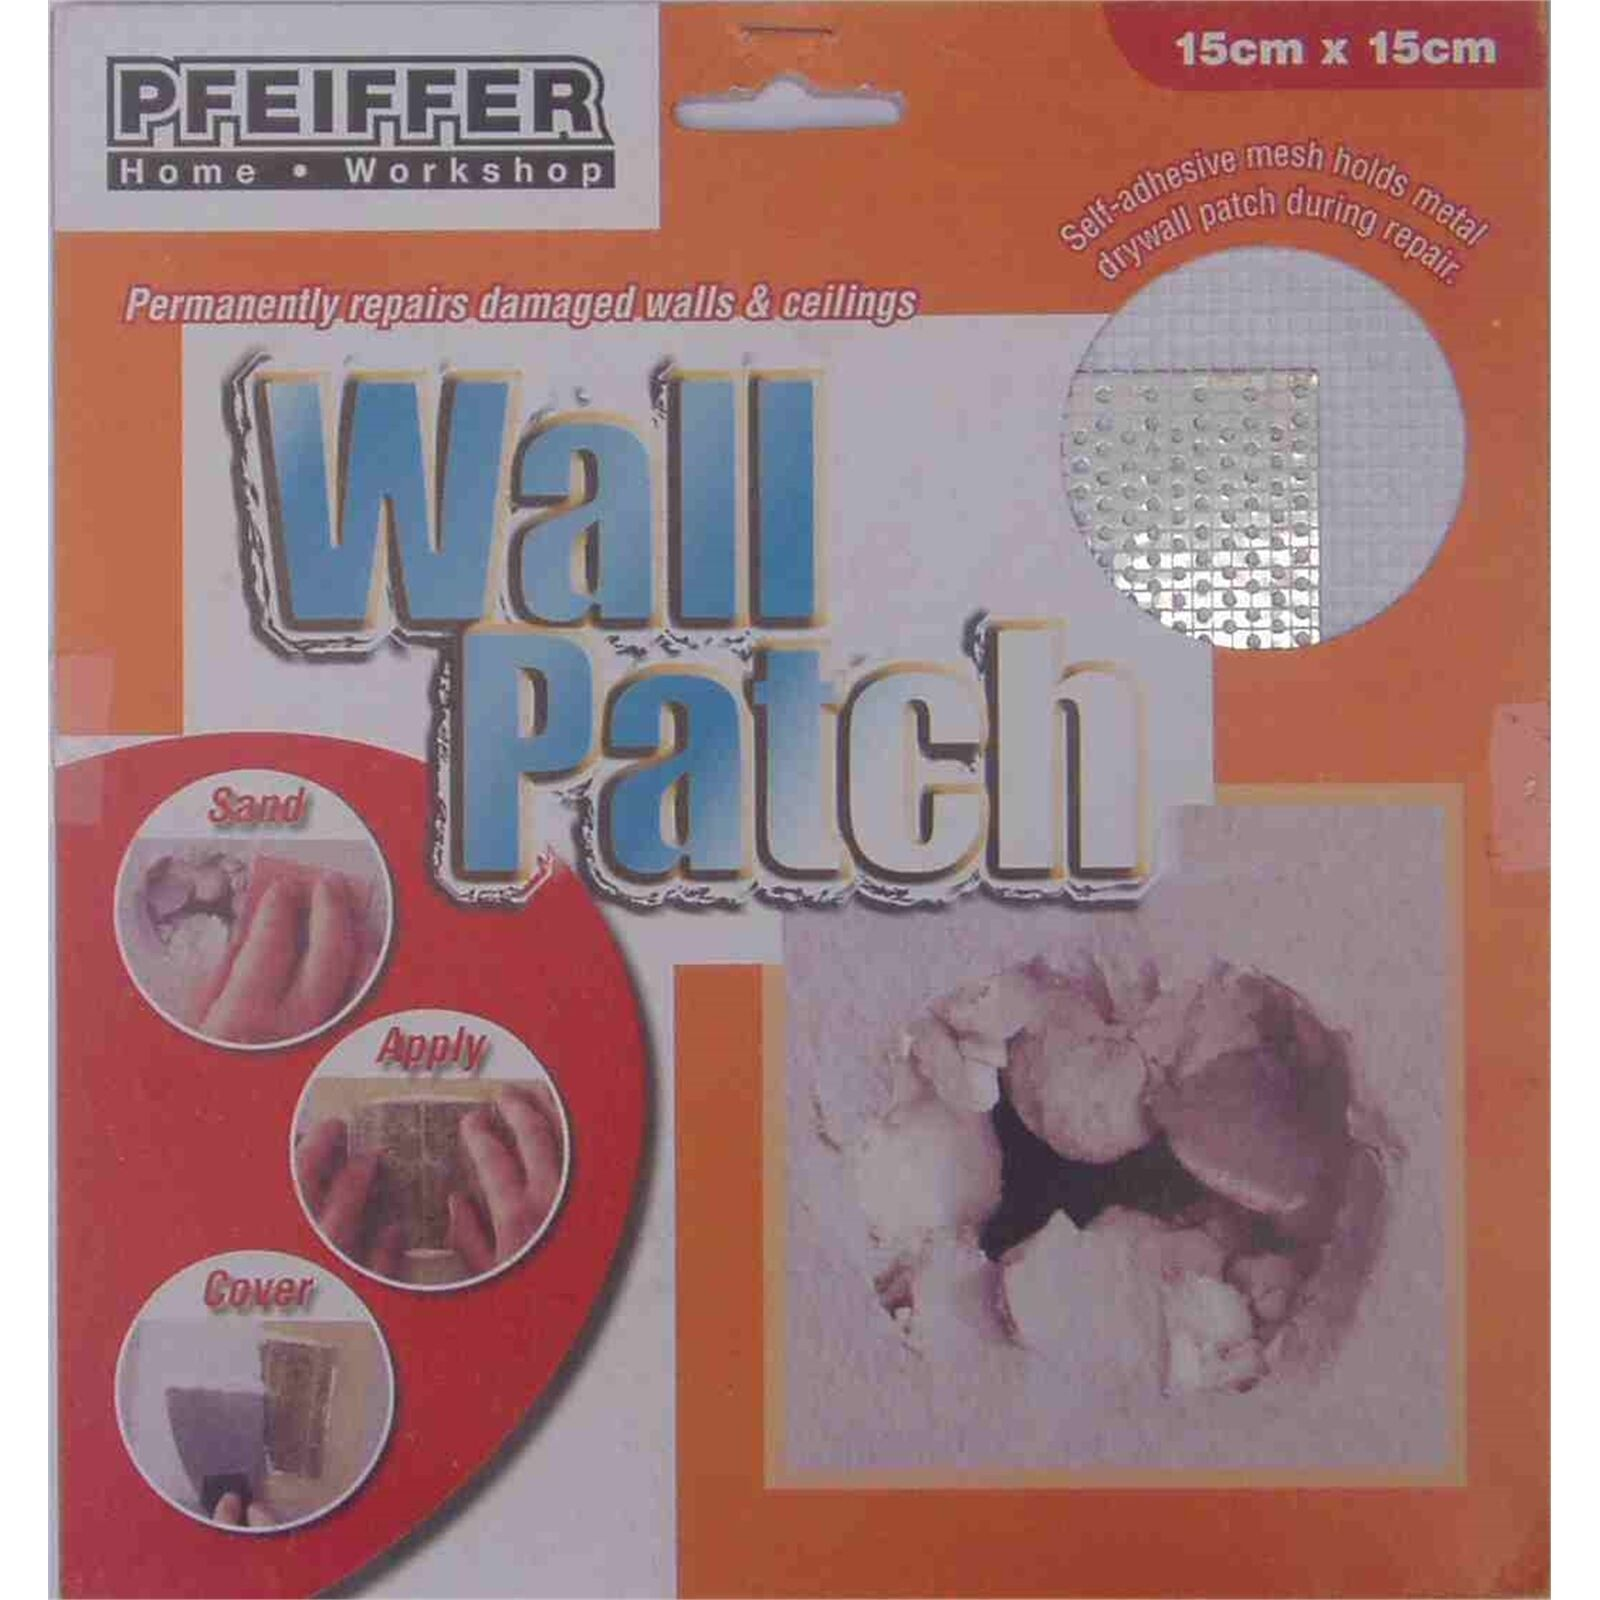 New Pfeiffer 15cm Plaster Repair Wall Patch Diy Repair Damage Ceiling Hole Ebay